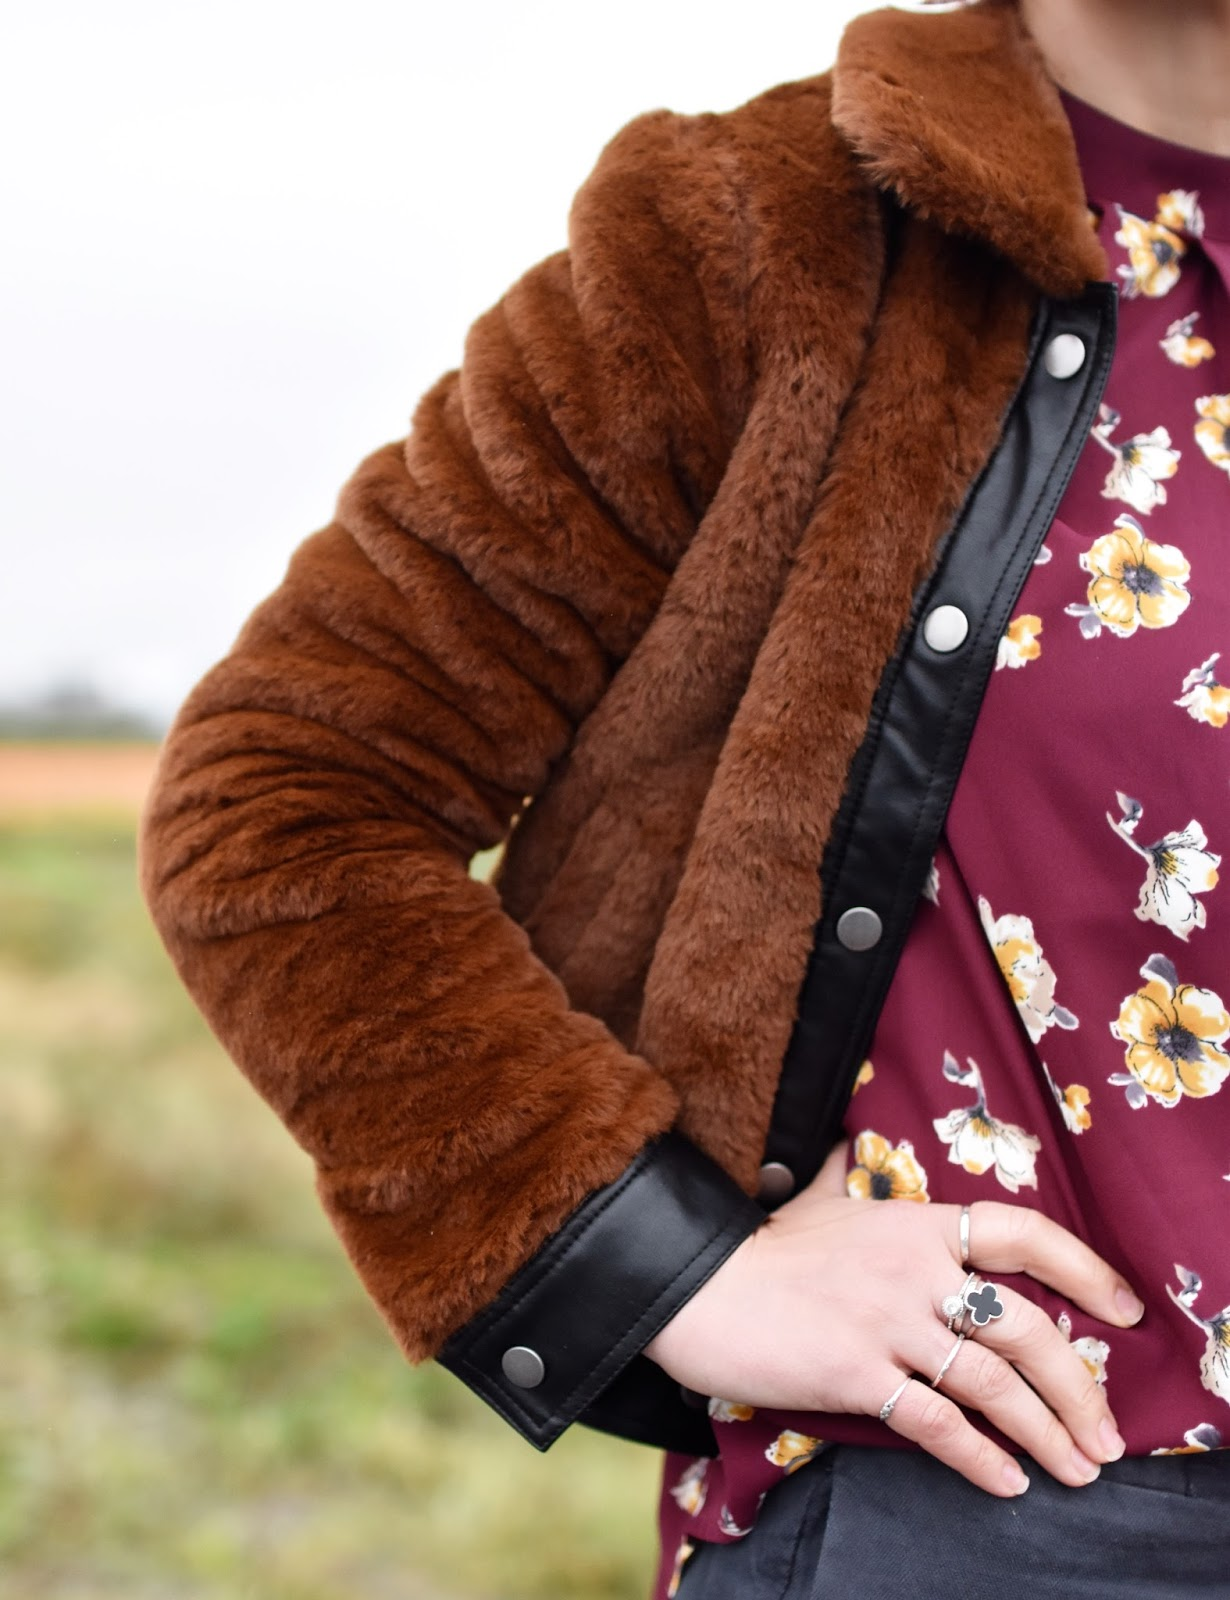 Outfit inspiration c/o Monika Faulkner - styling a Forever 21 faux-fur bomber jacket over a floral blouse